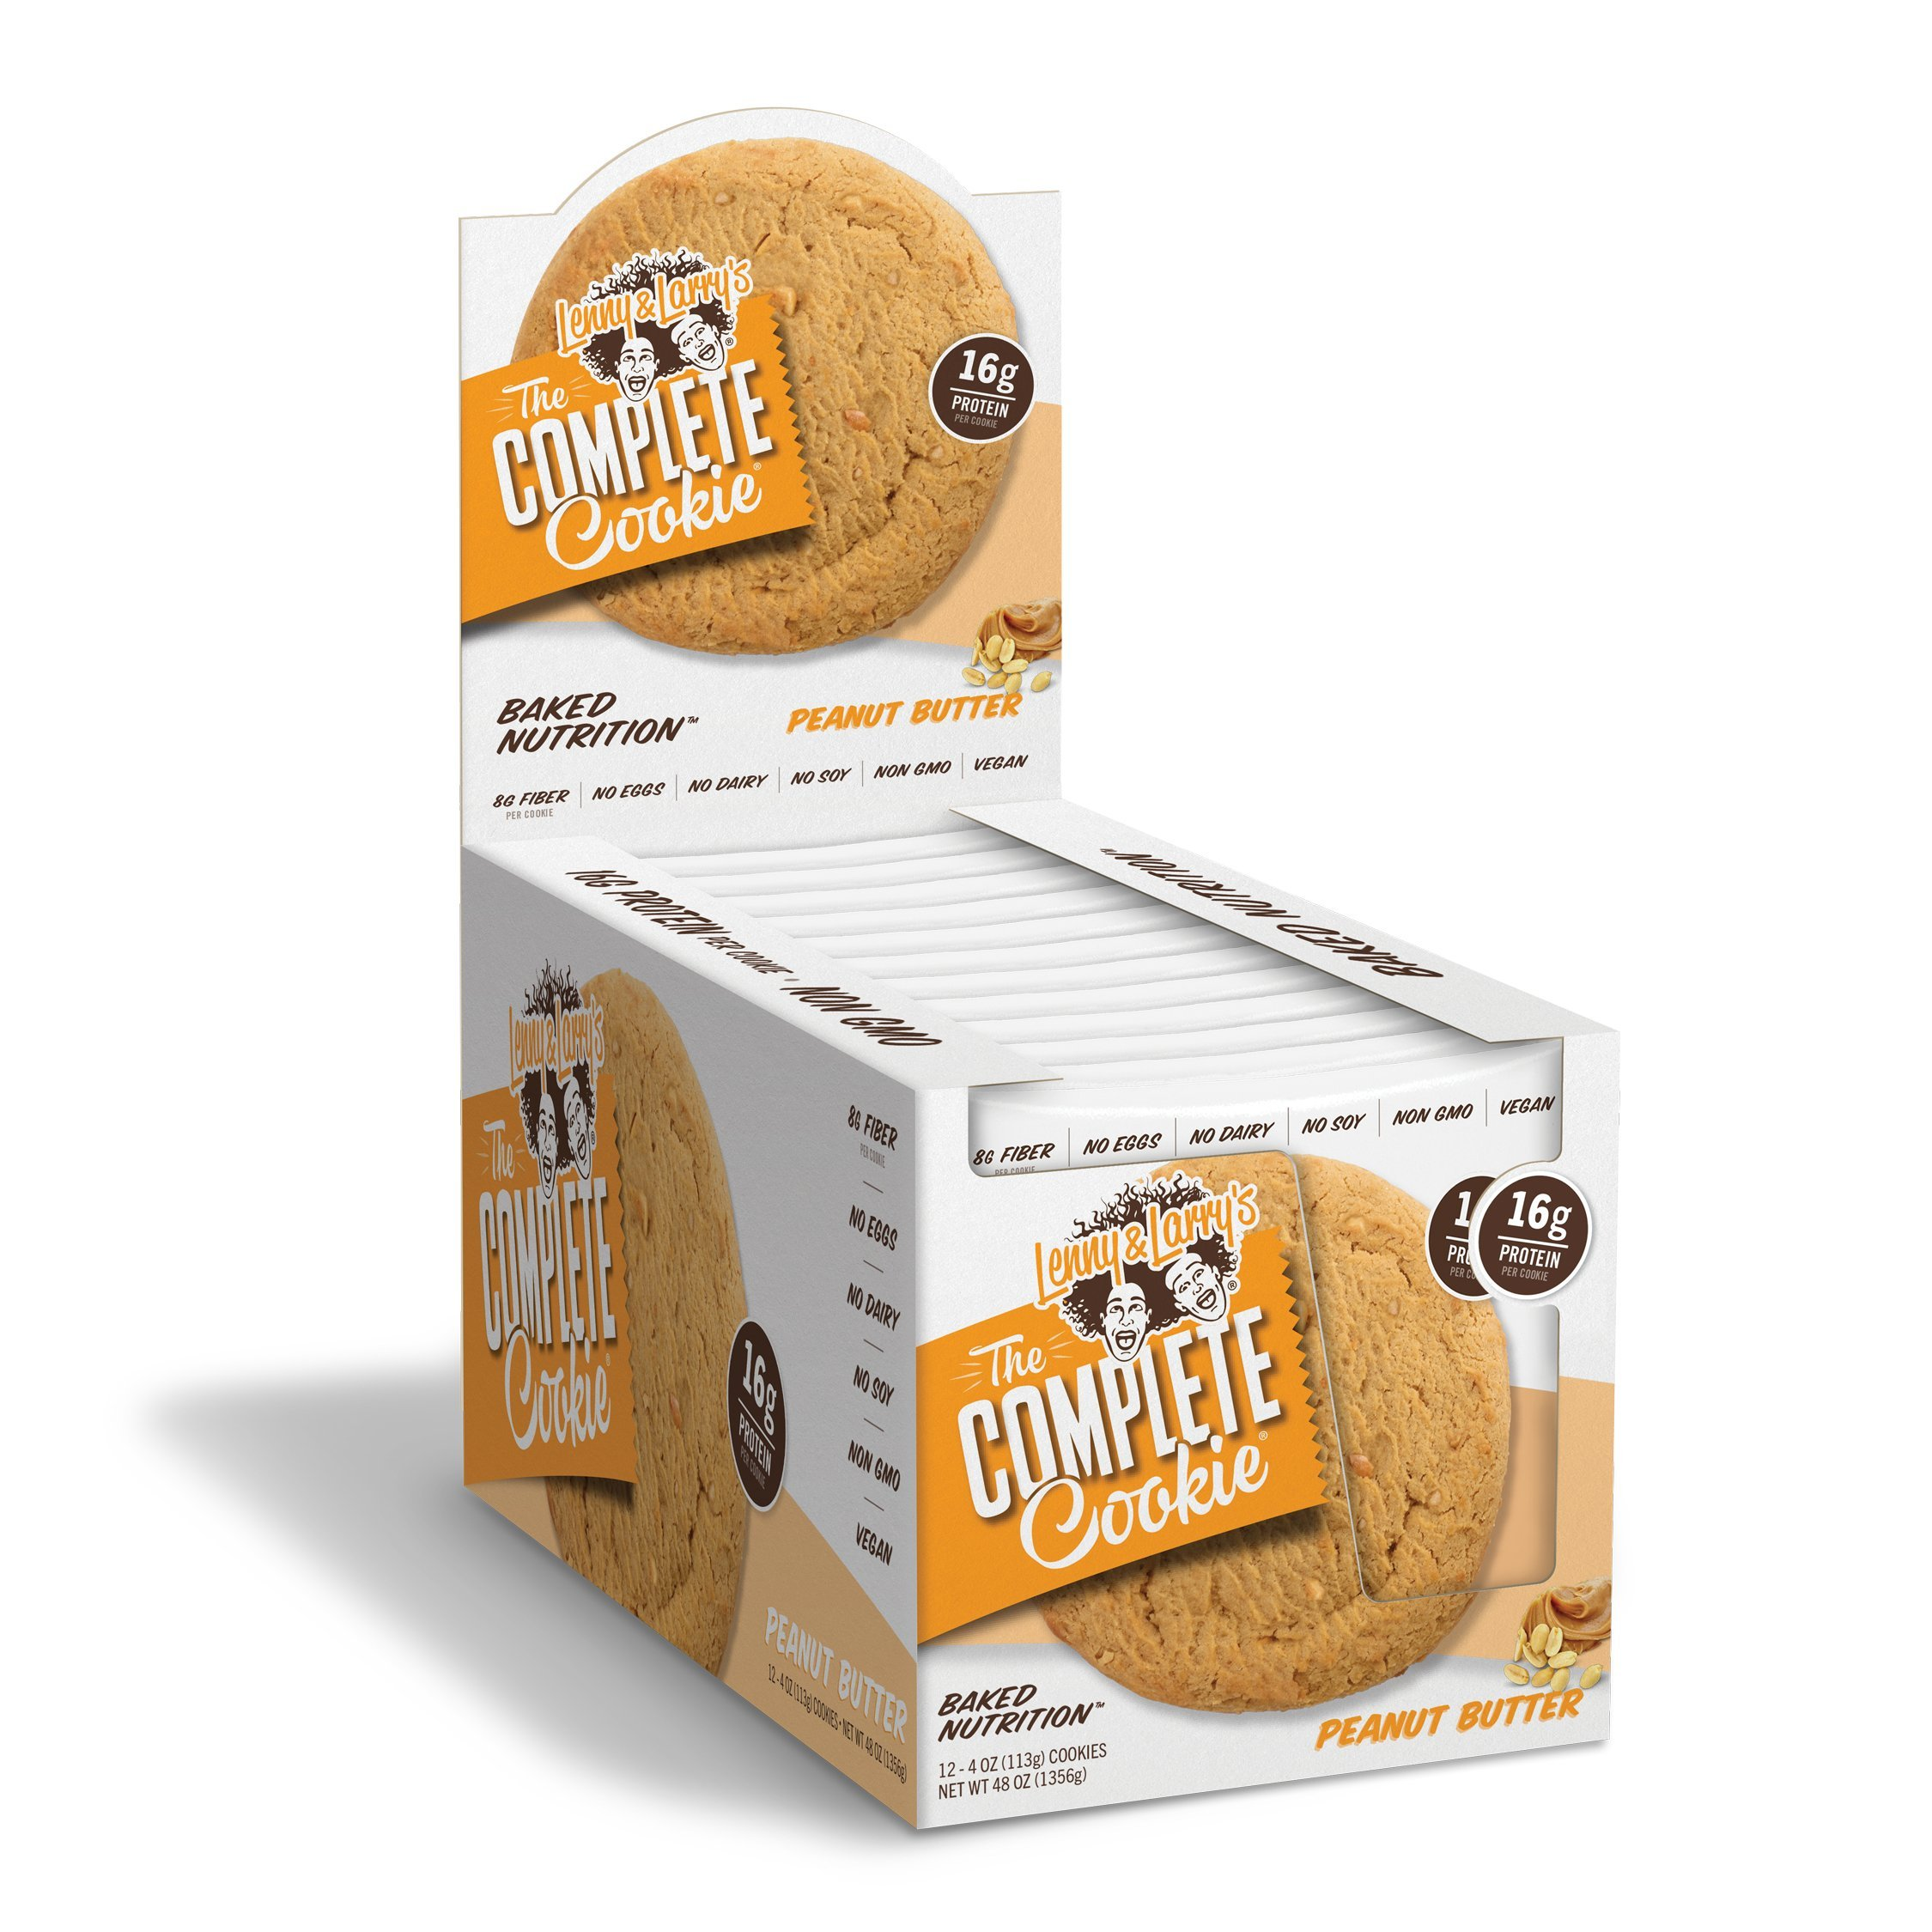 Lenny & Larry's The Complete Cookie, Peanut Butter, 4 Ounce Cookies - 12 Count, Soft Baked, Vegan and Non GMO Protein Cookies by Lenny & Larry's (Image #1)